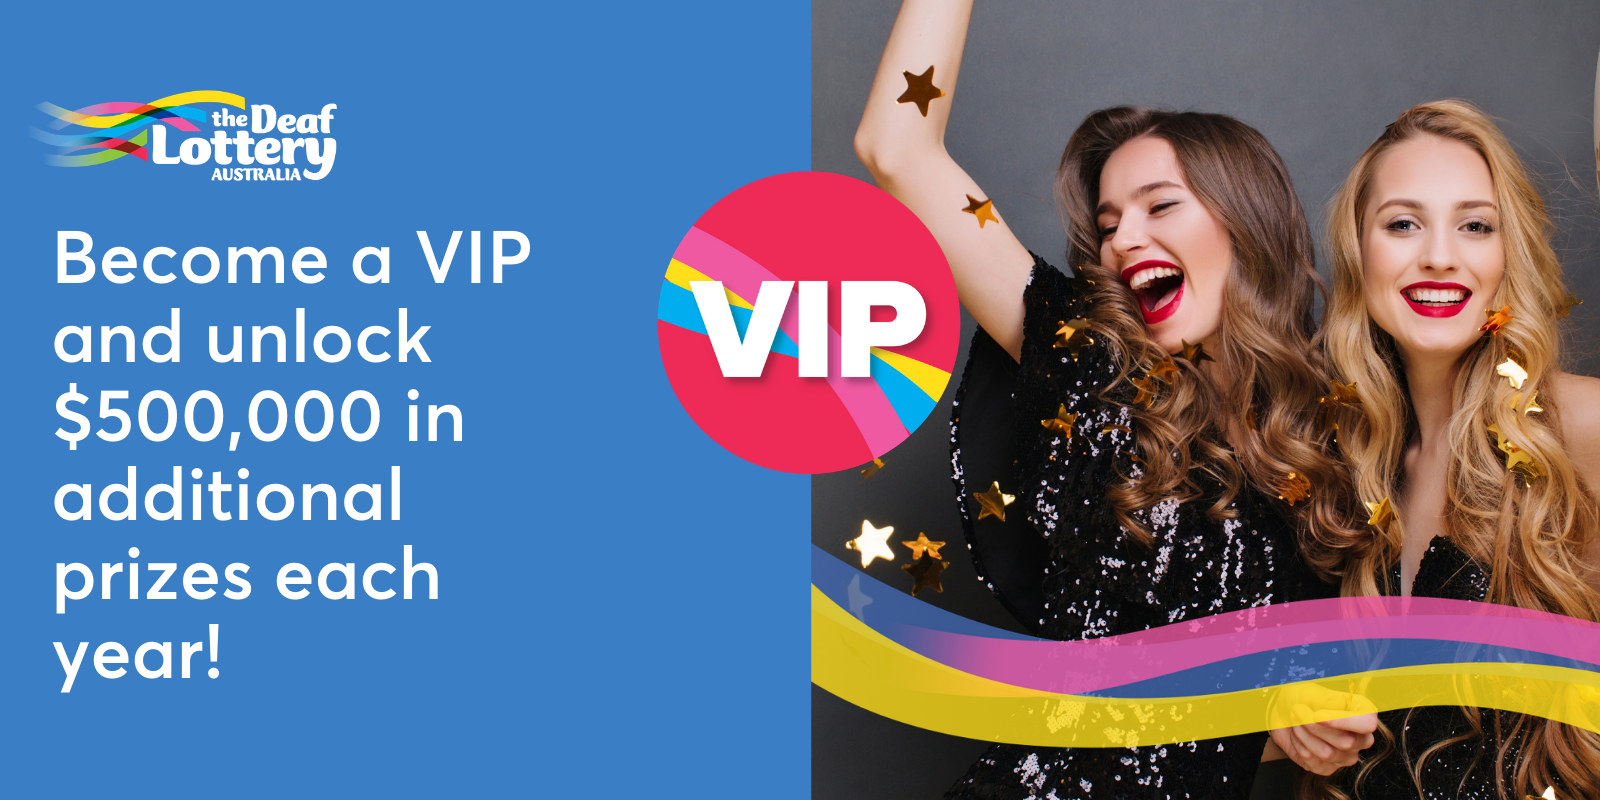 Text: Become a VIP and unlock $500,000 in additional prizes each year!